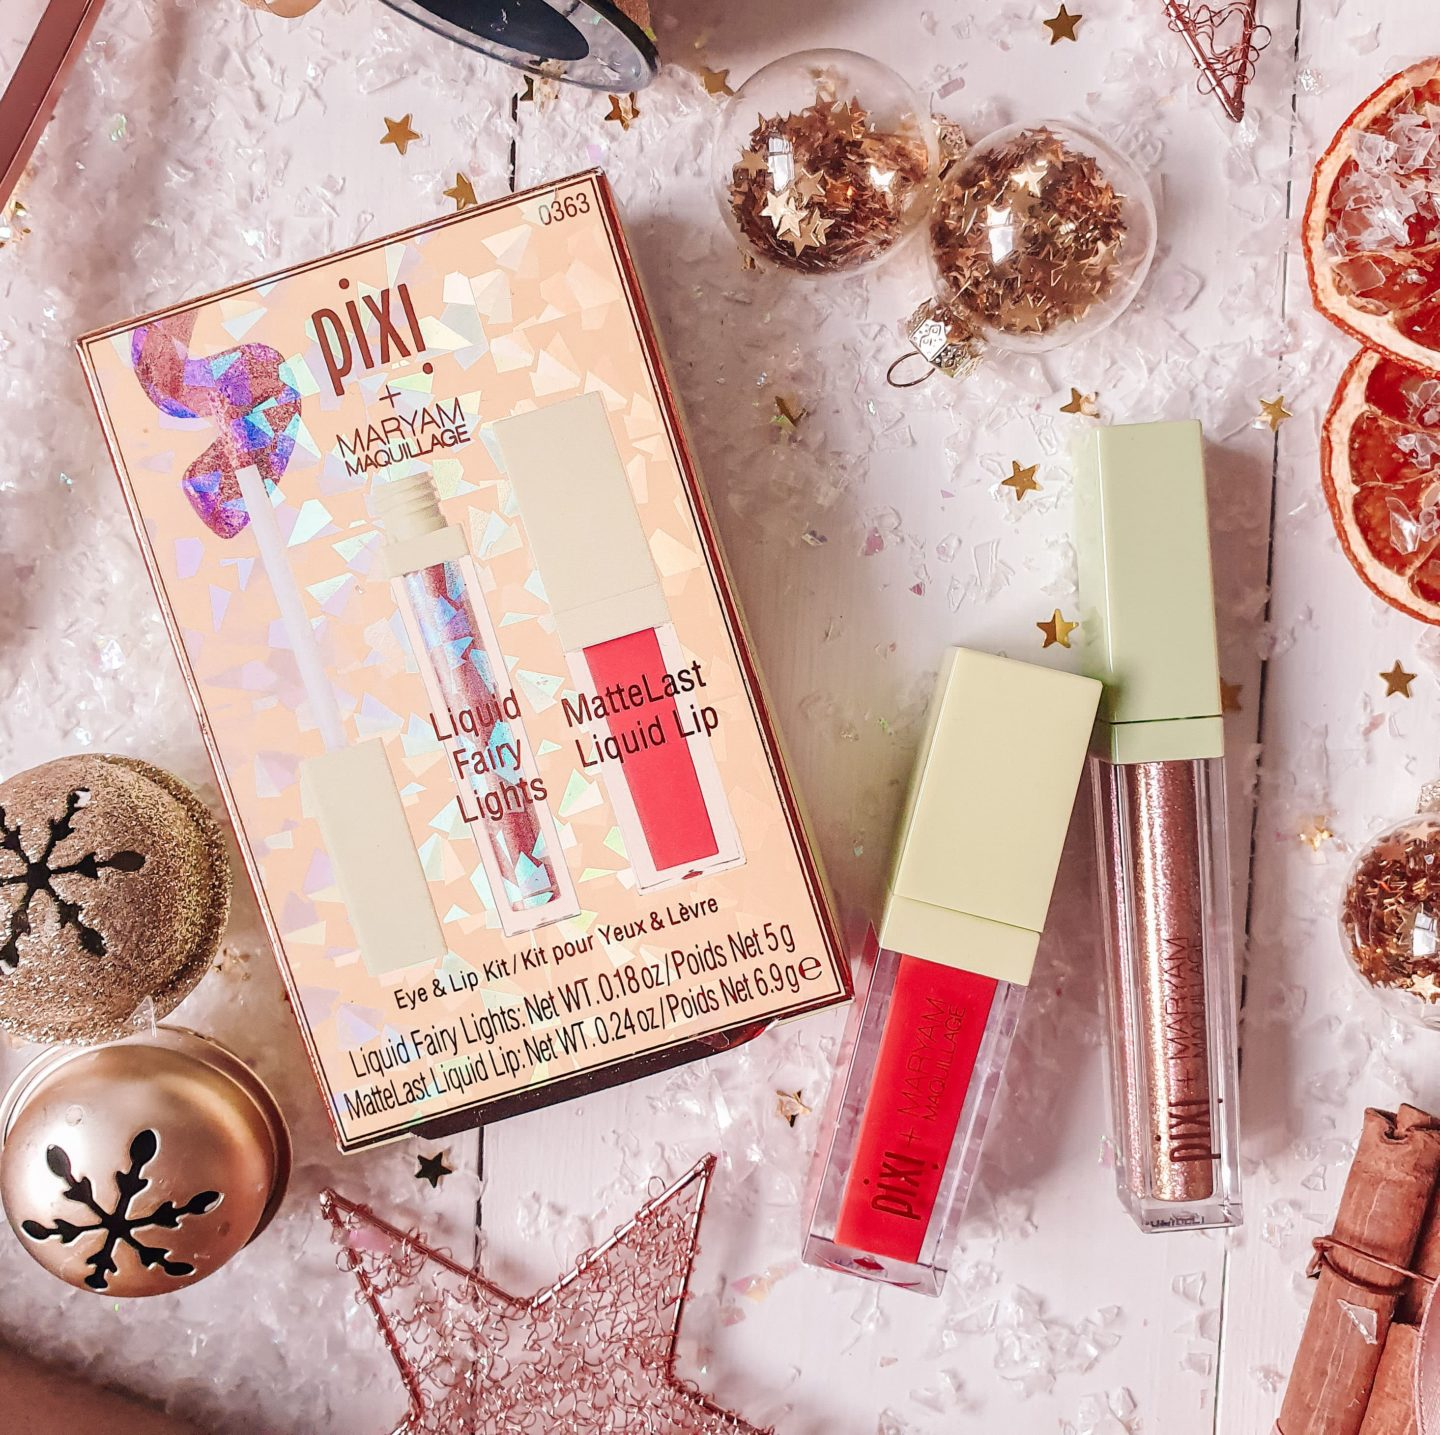 Pixi Eye + Lip Kit